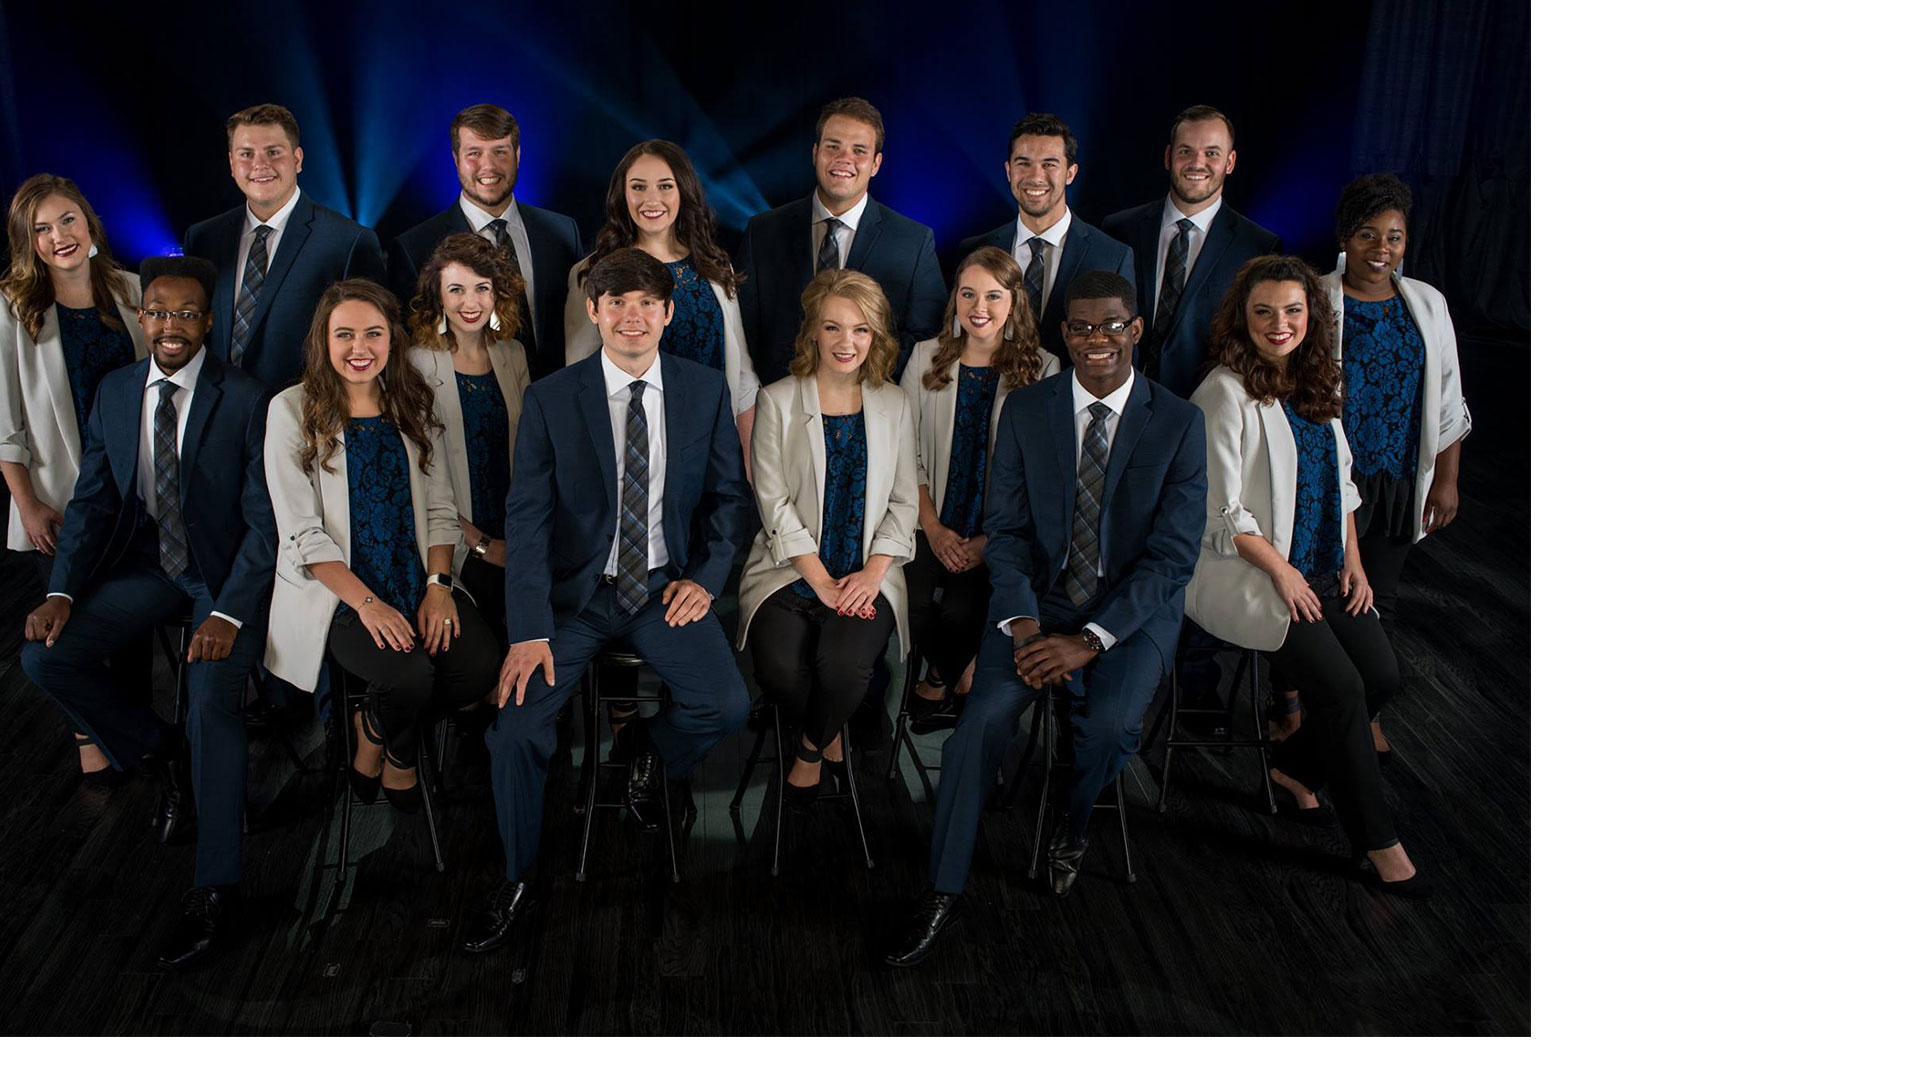 University of Mobile Vocal Group